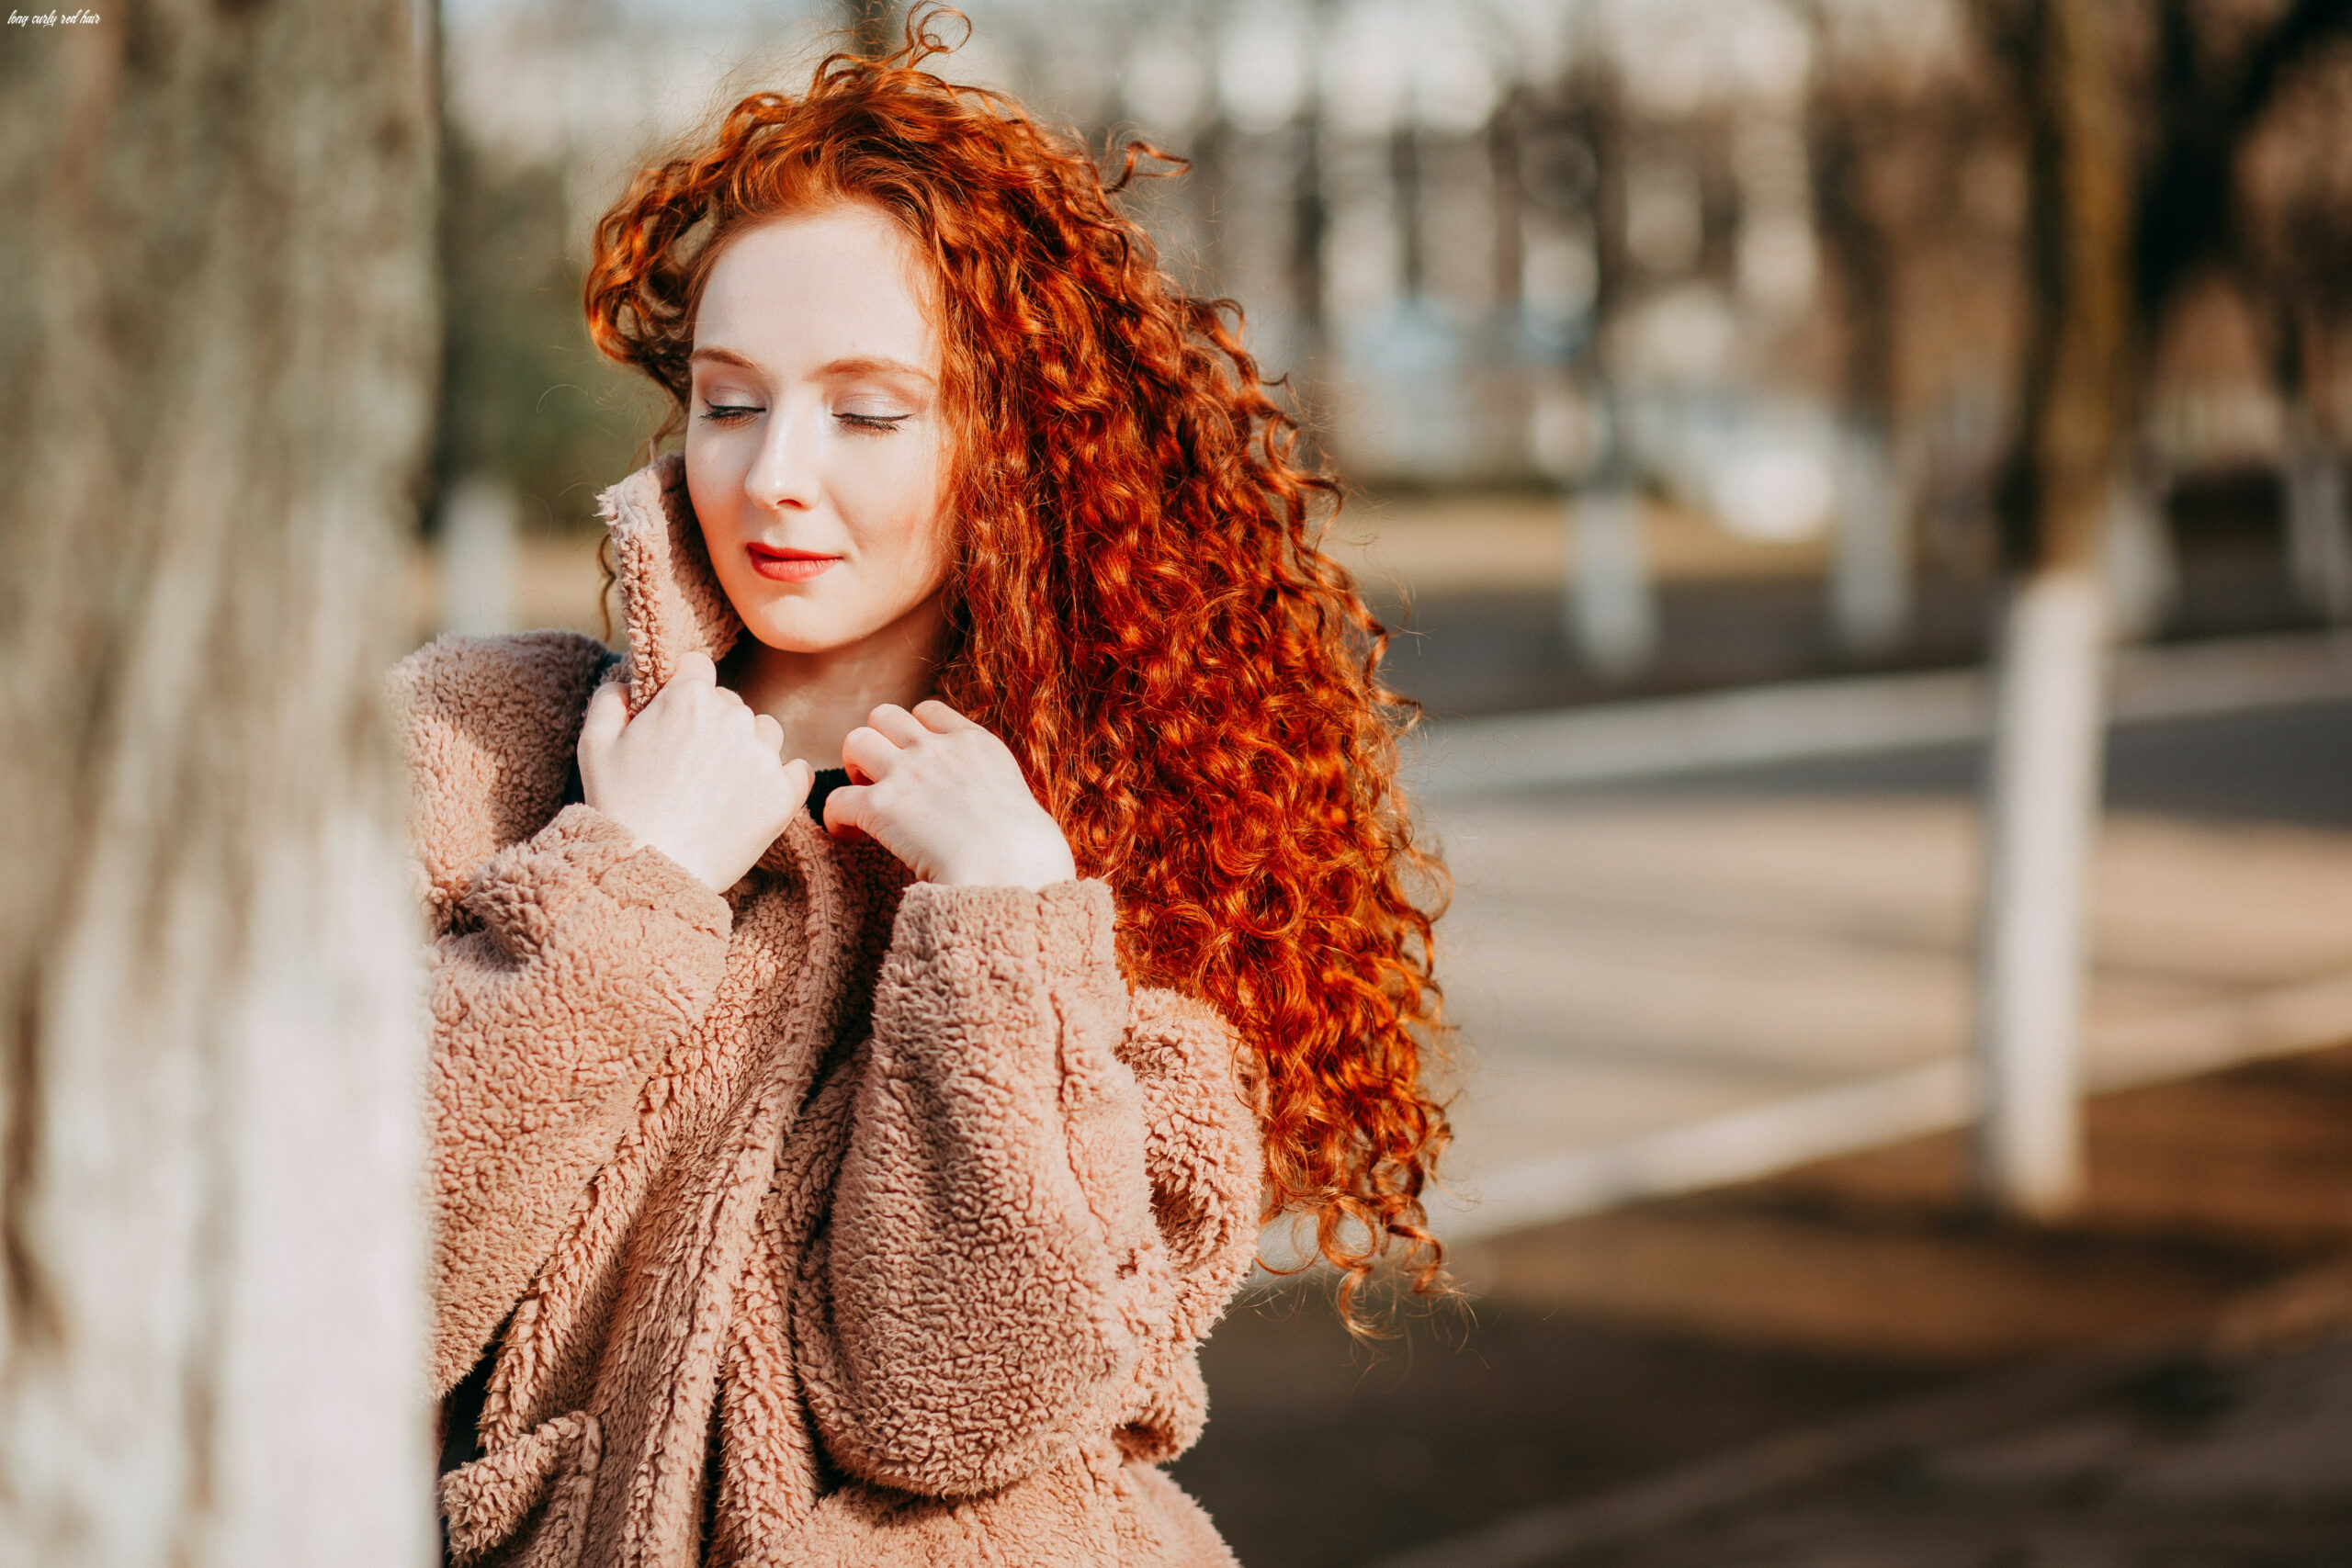 Long Curly Red-haired Woman Wearing Brown Fleece Coat · Free Stock ...